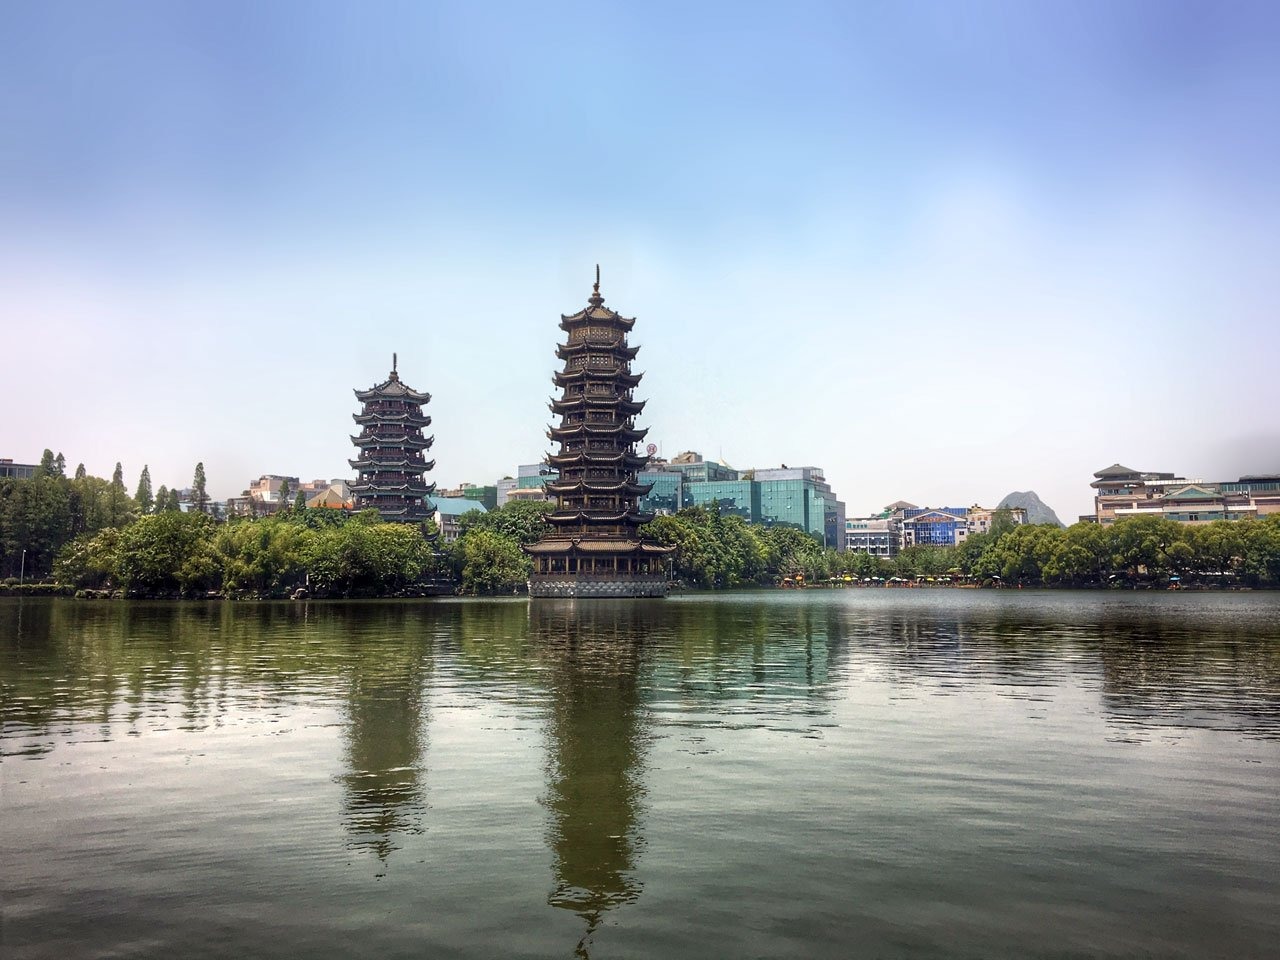 Twin Pagodas in Guilin, China | Image © ExpatAlli.com